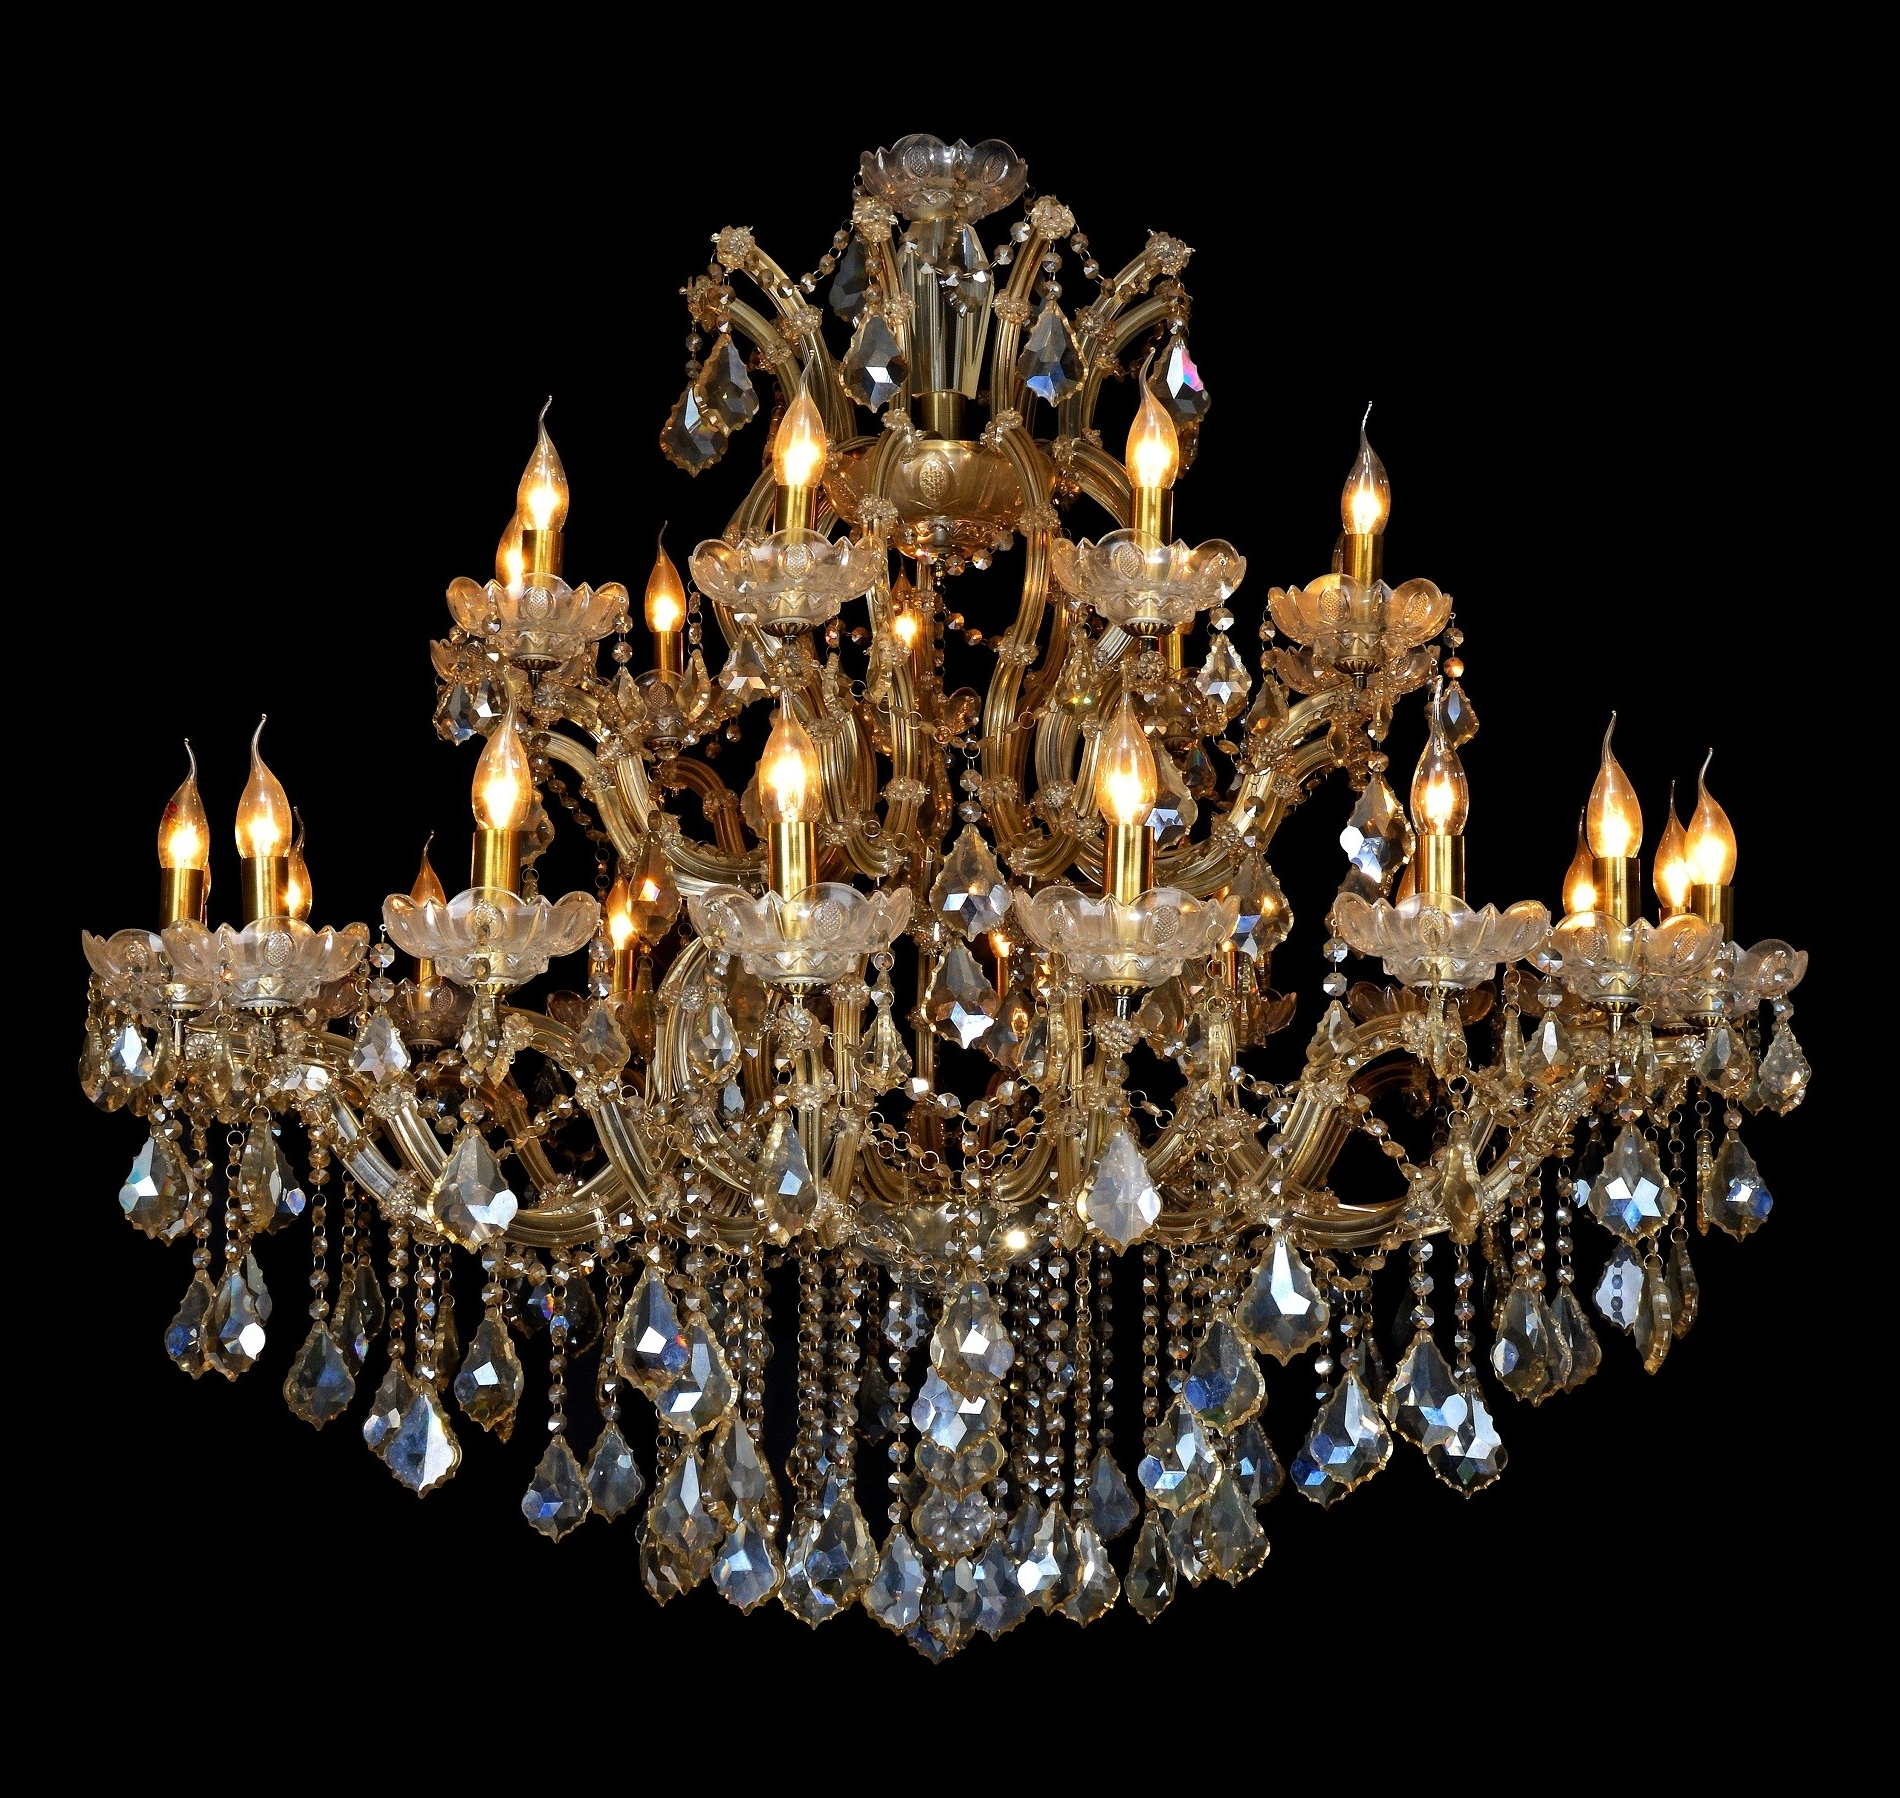 Queen Royal Victoria Of Uk, 27L, 2 Tiers Extra Large Over Size K9 Regarding Most Up To Date Extra Large Crystal Chandeliers (View 19 of 20)